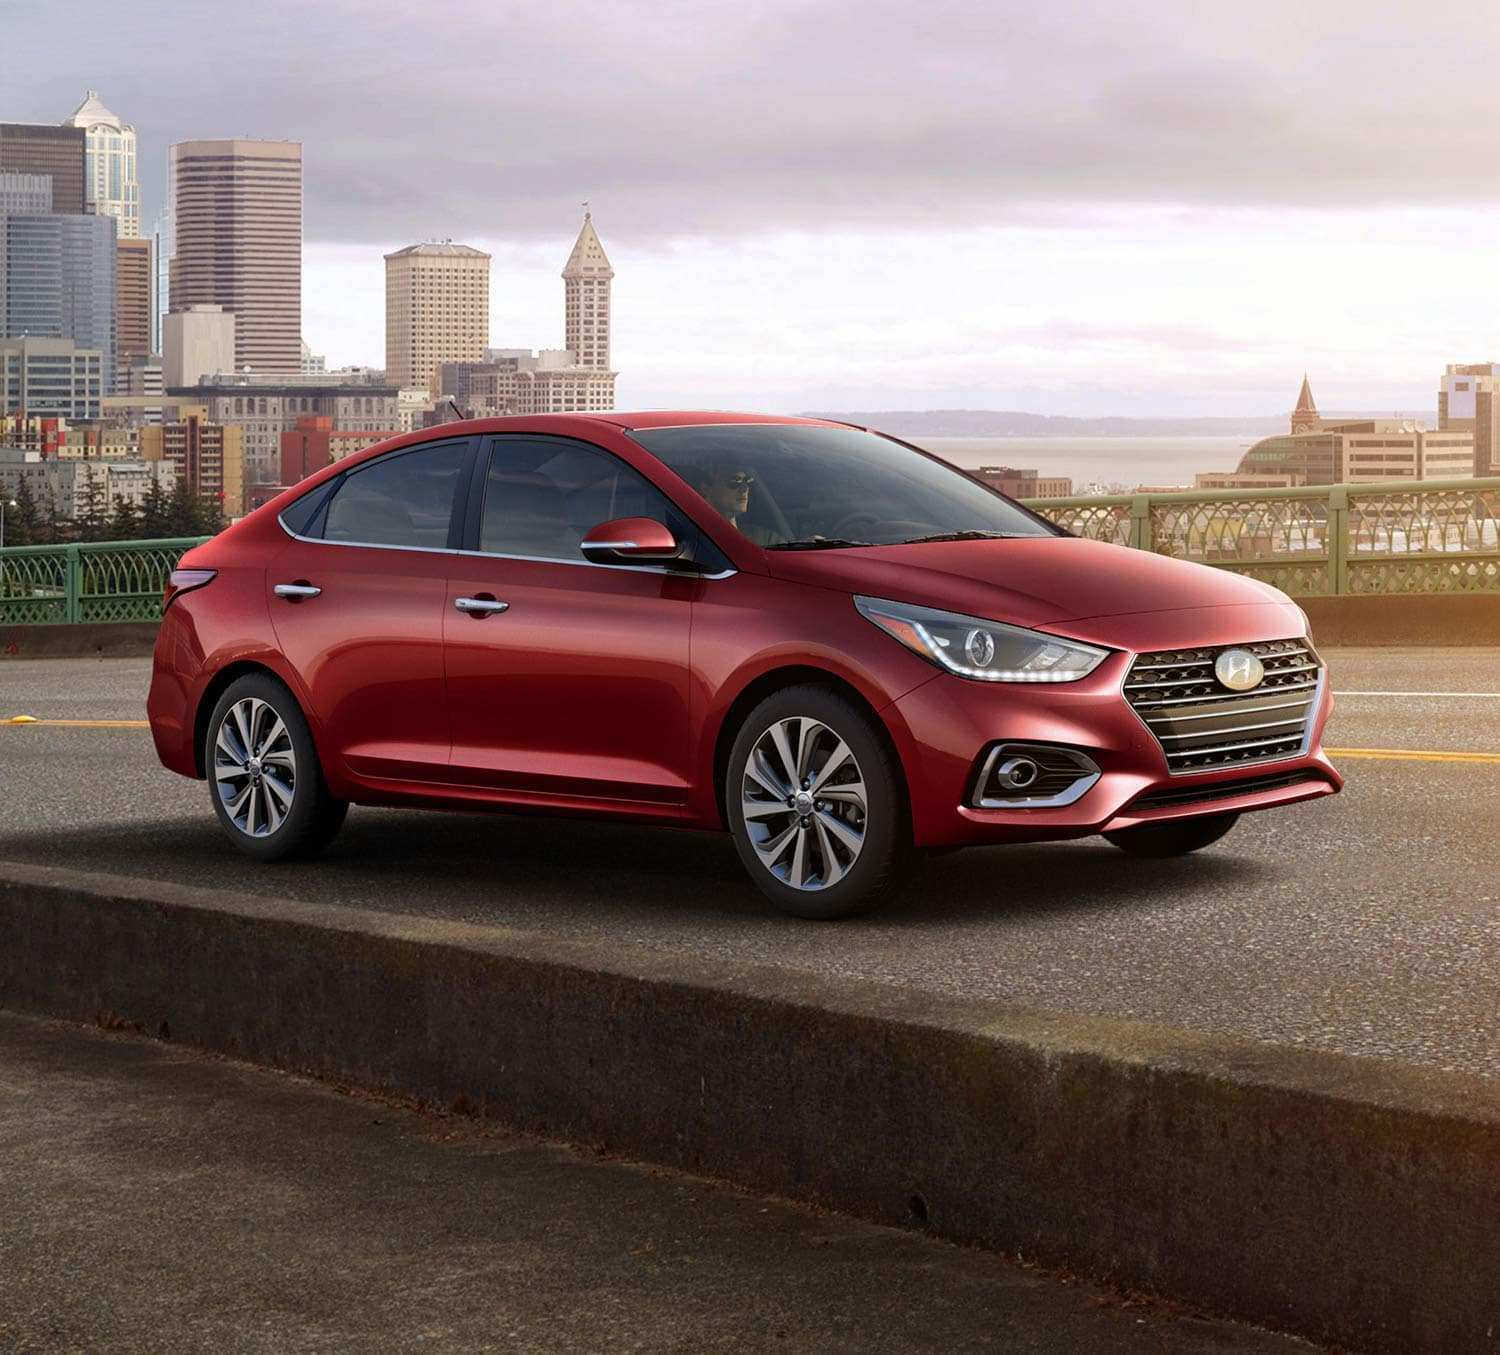 68 All New 2019 Hyundai Accent Hatchback Style by 2019 Hyundai Accent Hatchback